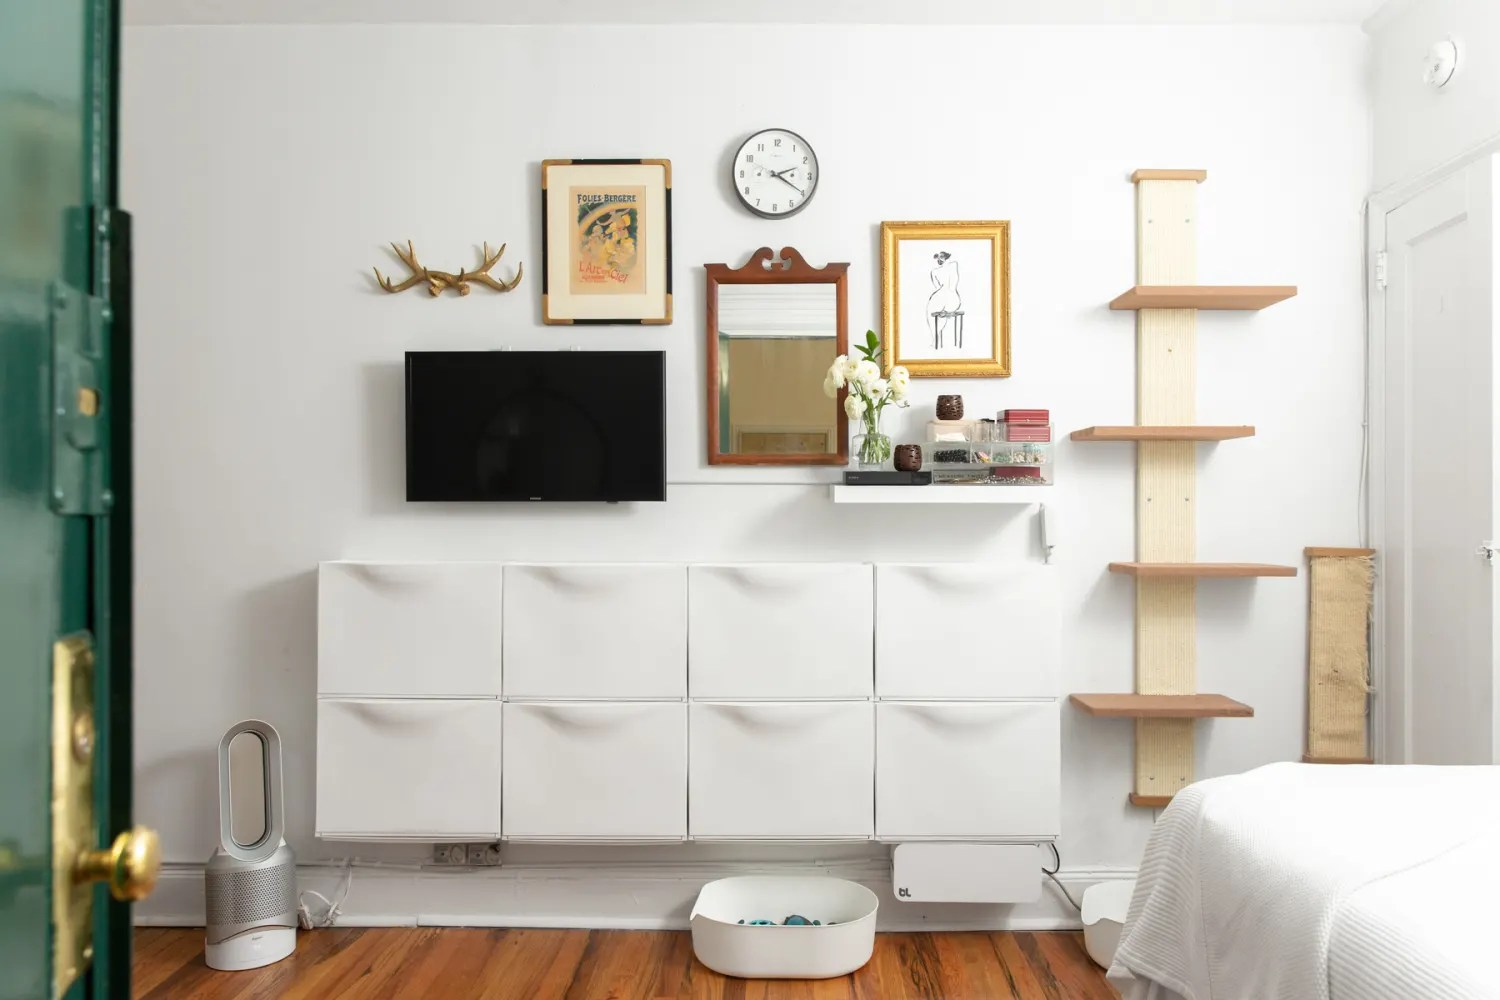 Small Studio Apartment Organizing Advice and Ideas ... on Small Apartment Organization  id=49901